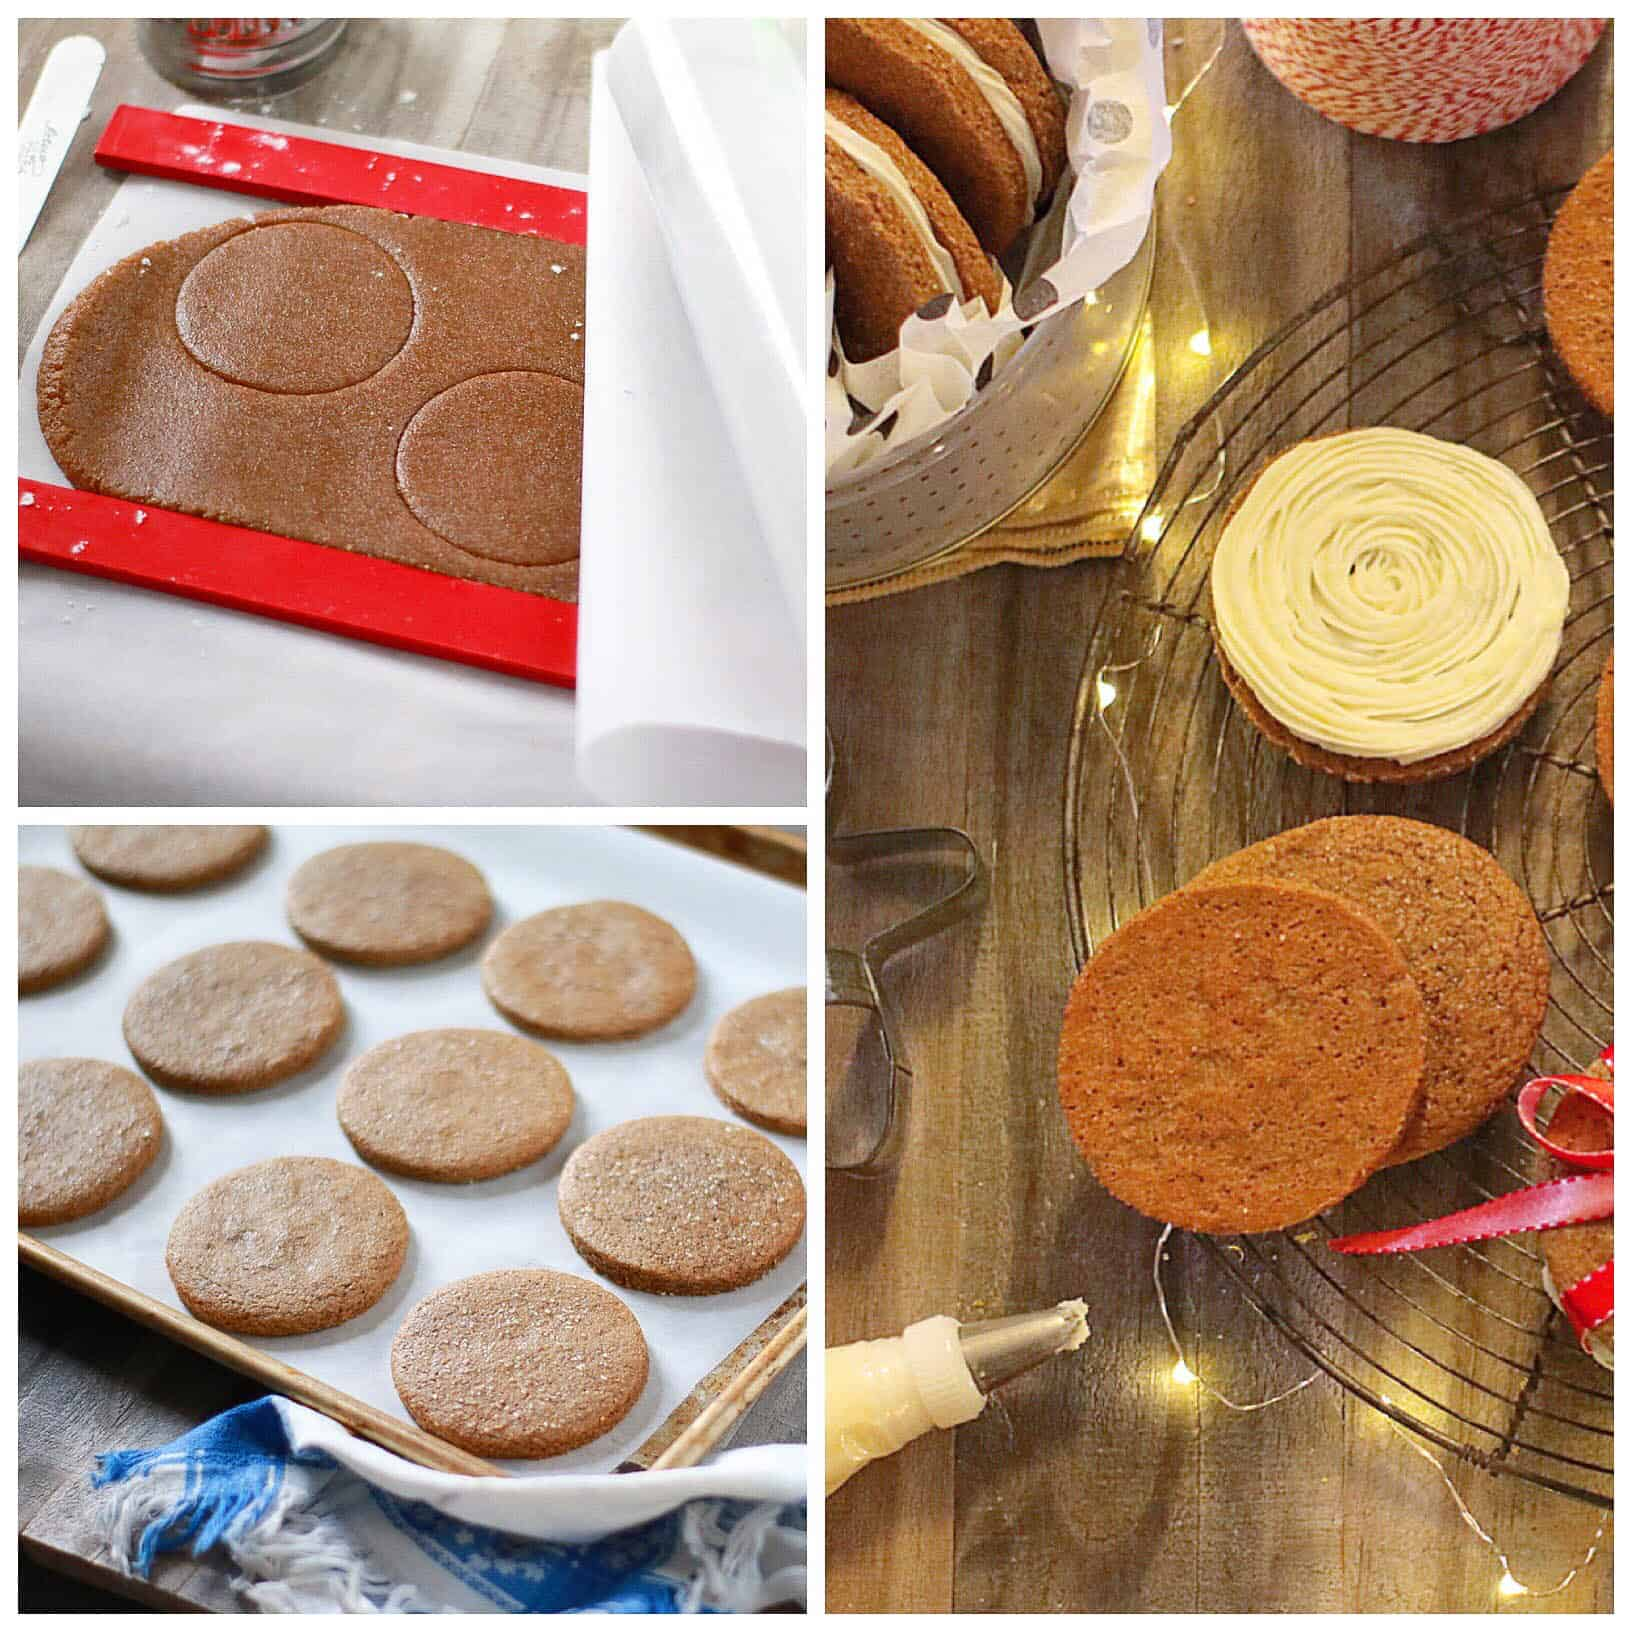 Lemon Gingerbread Sandwich Cookies